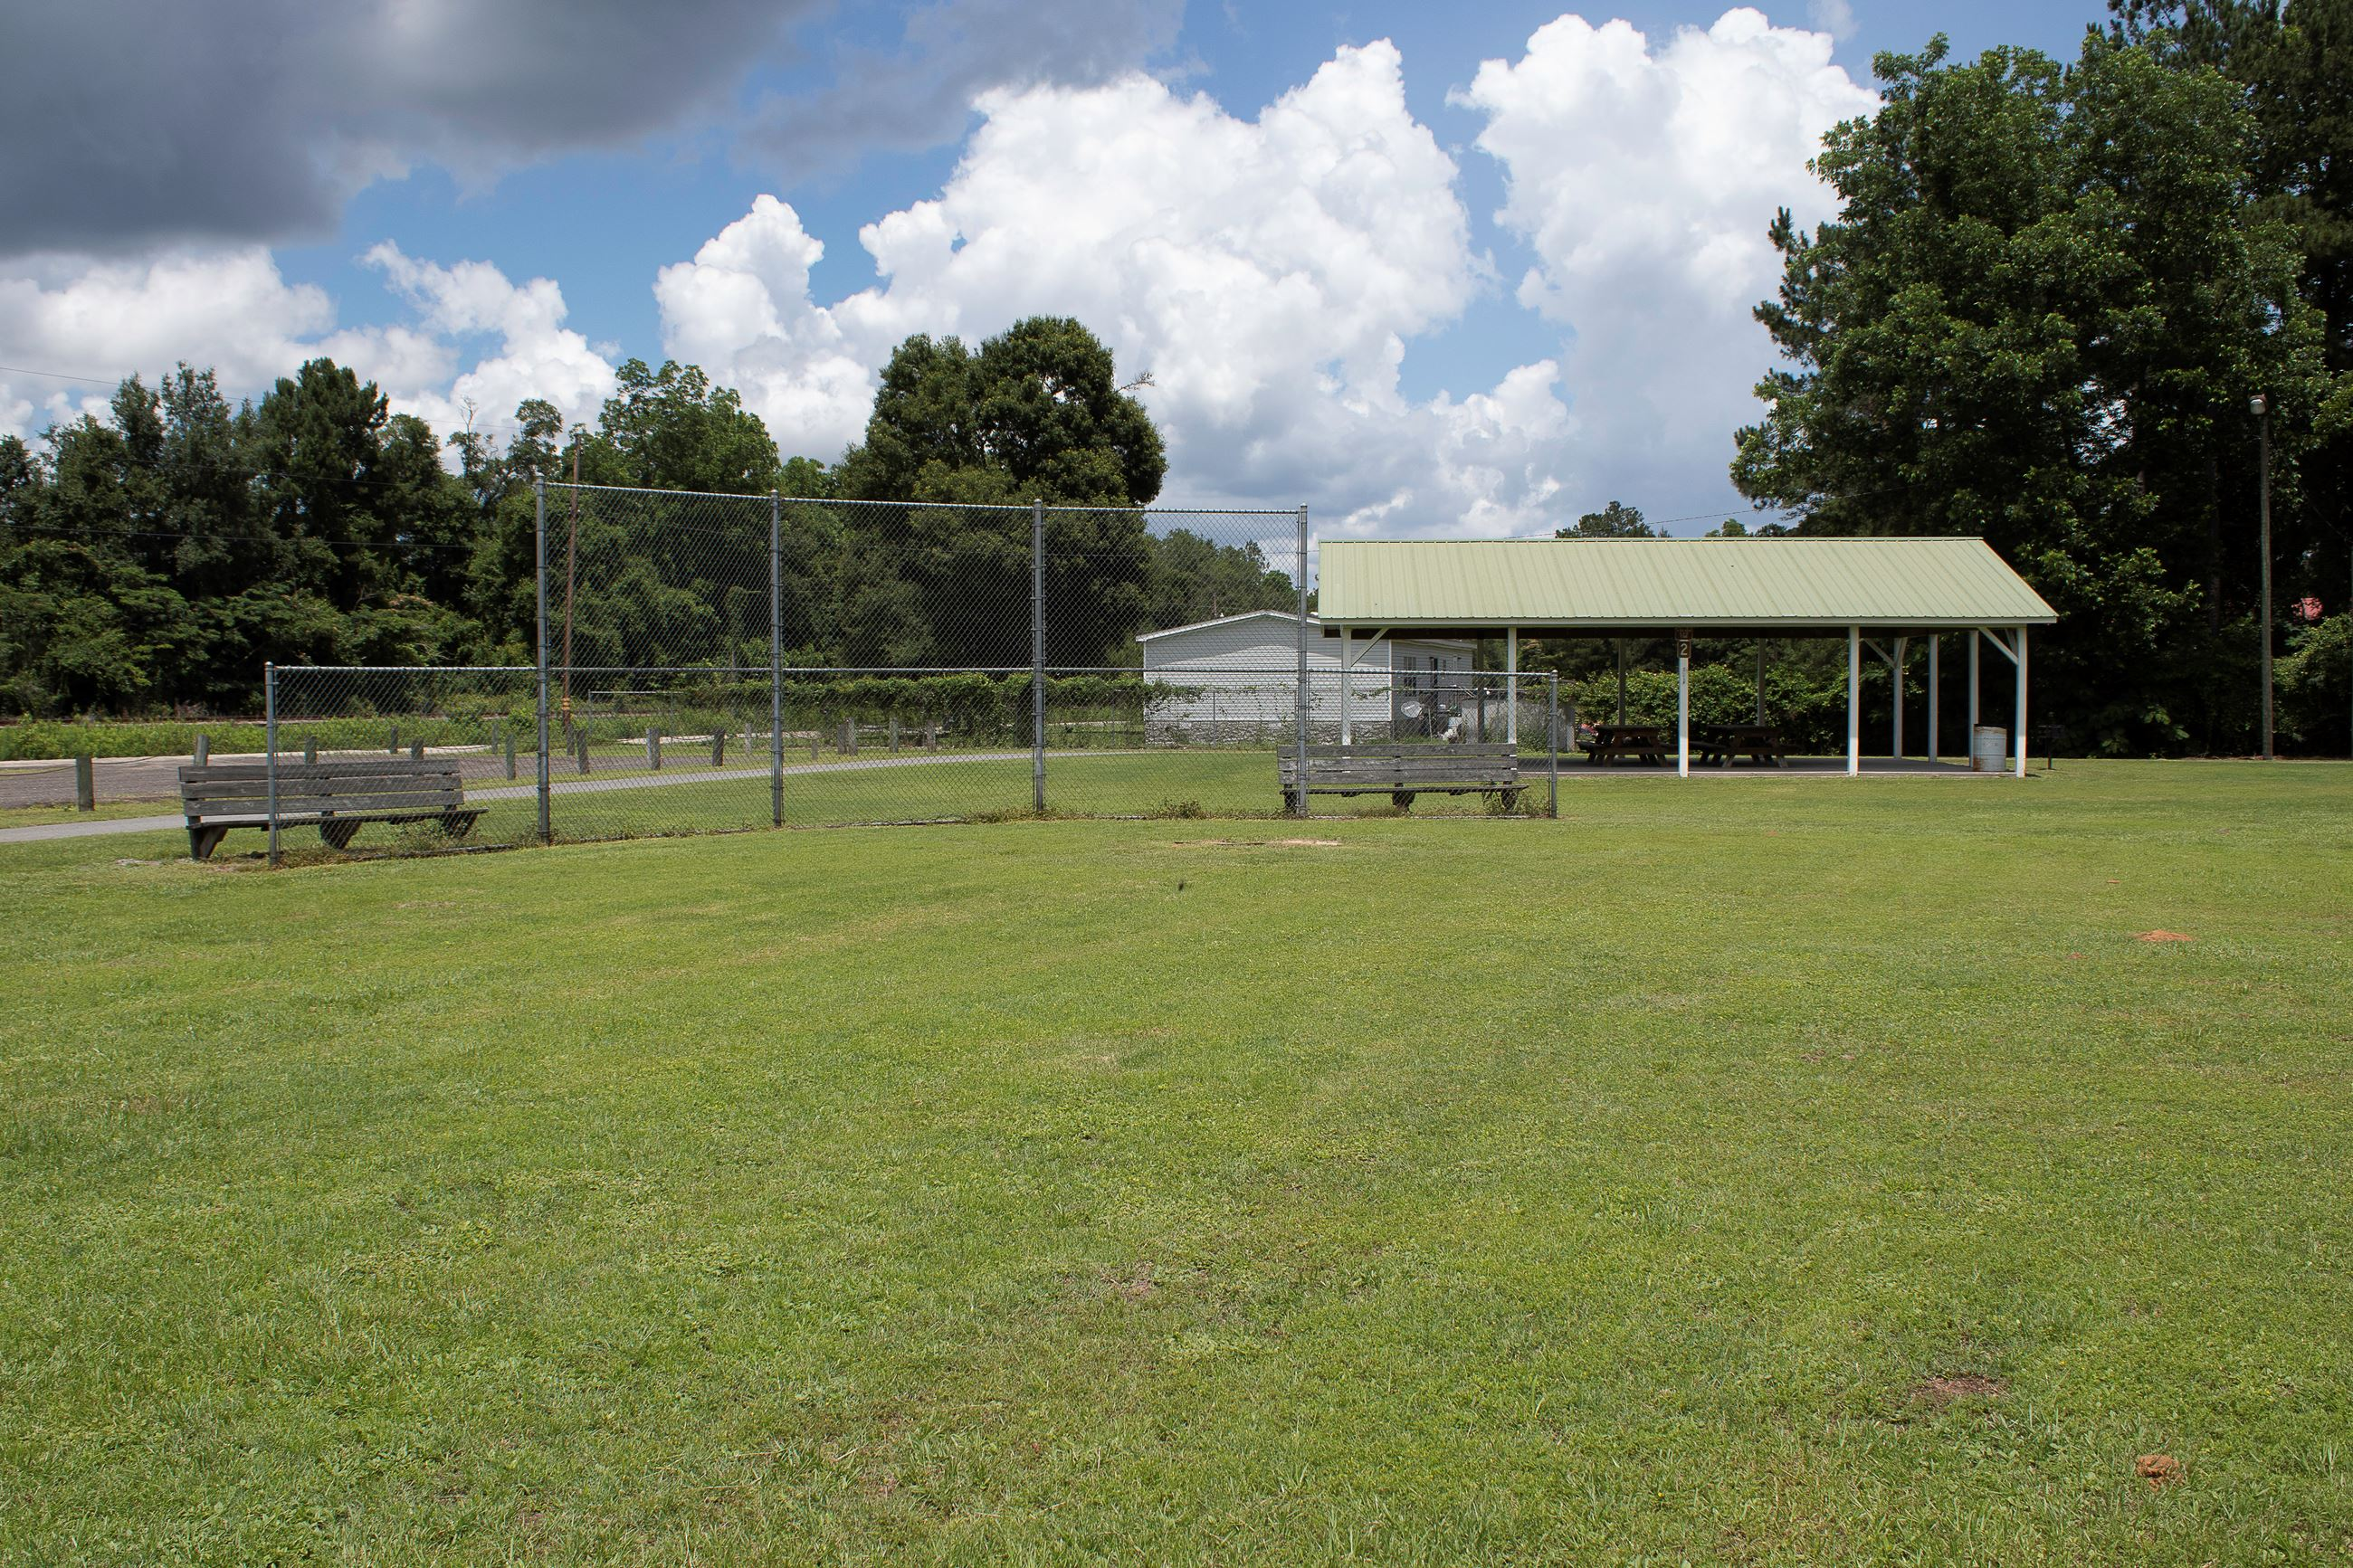 An image of a grassy field with a baseball backstop and a white picnic shelter behind them.